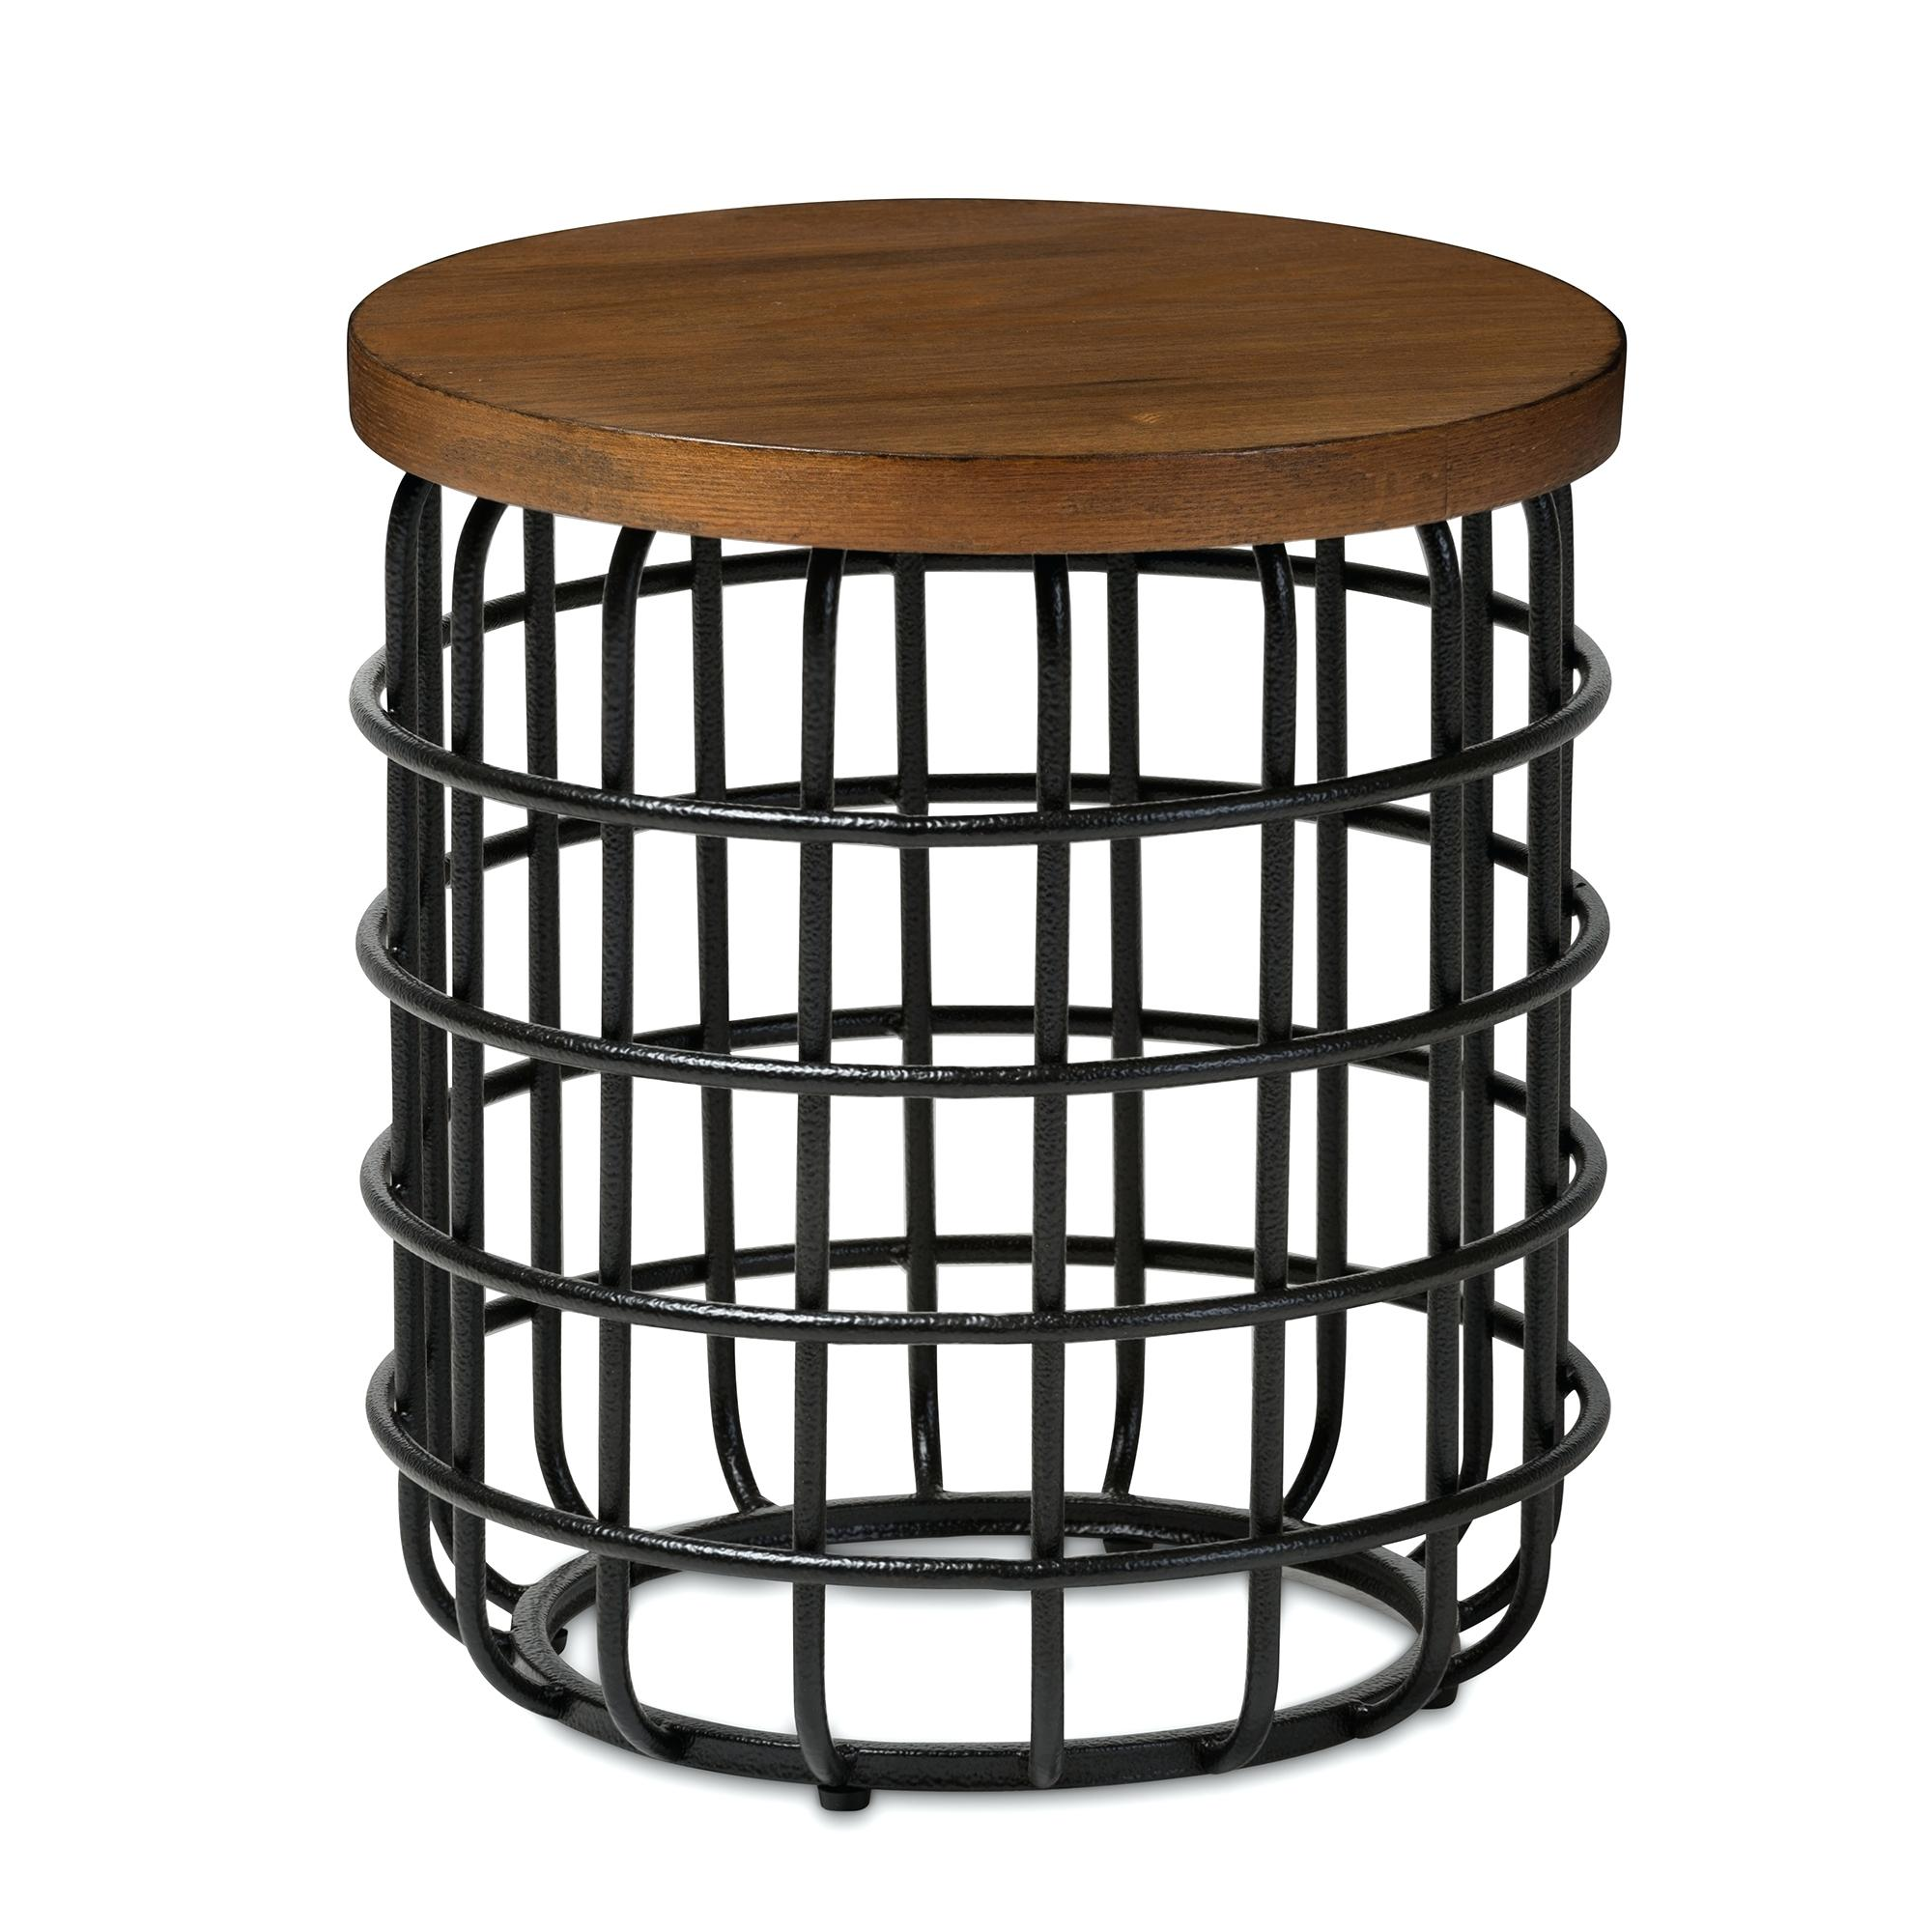 avani mango table sbud wood accent studio rustic industrial style antique black textured finished metal distressed tables drum wooden next living room furniture candle